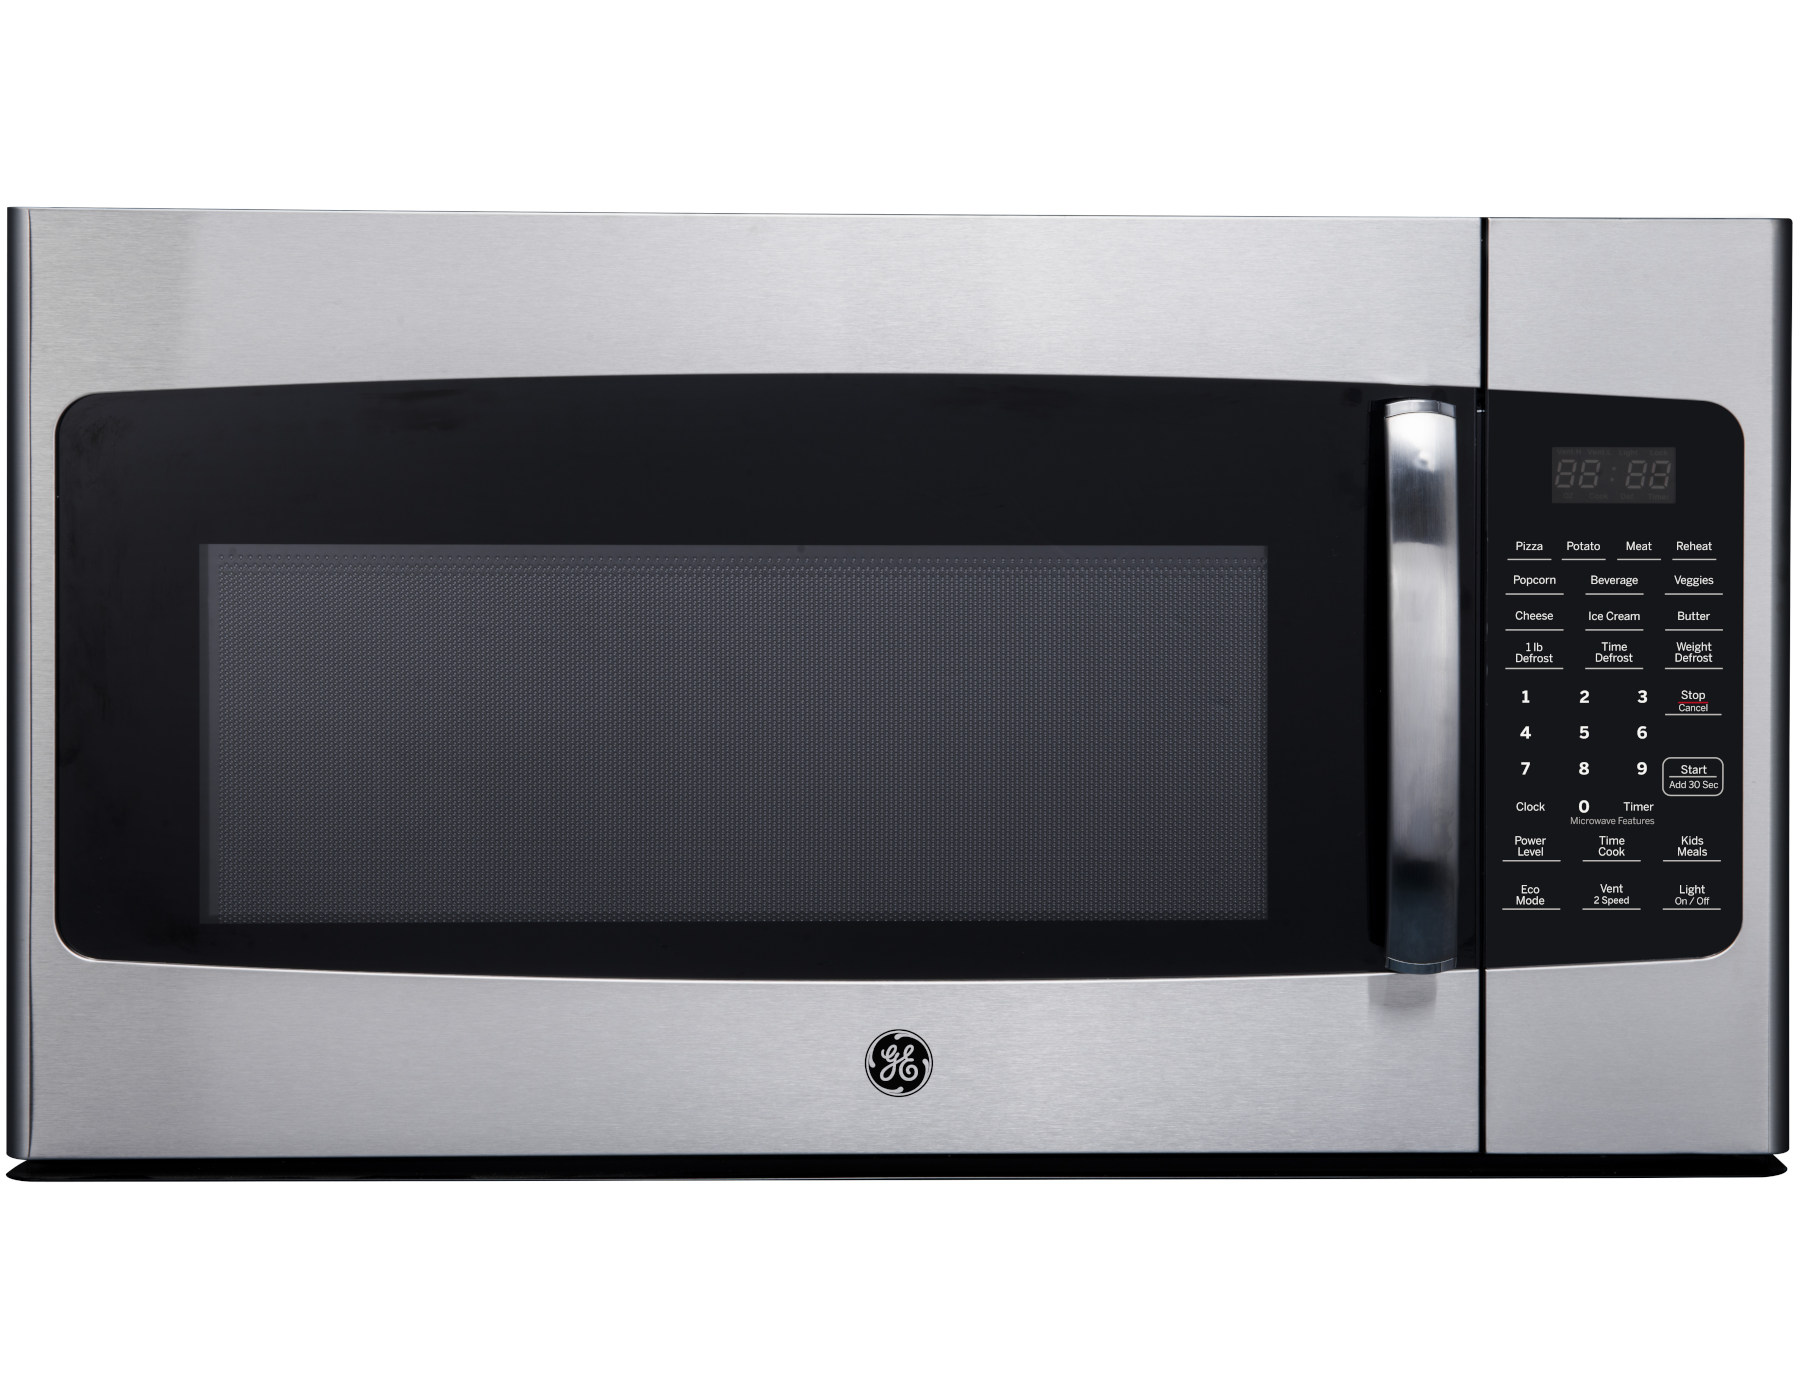 23459 – Over The Range Microwave – Stainless